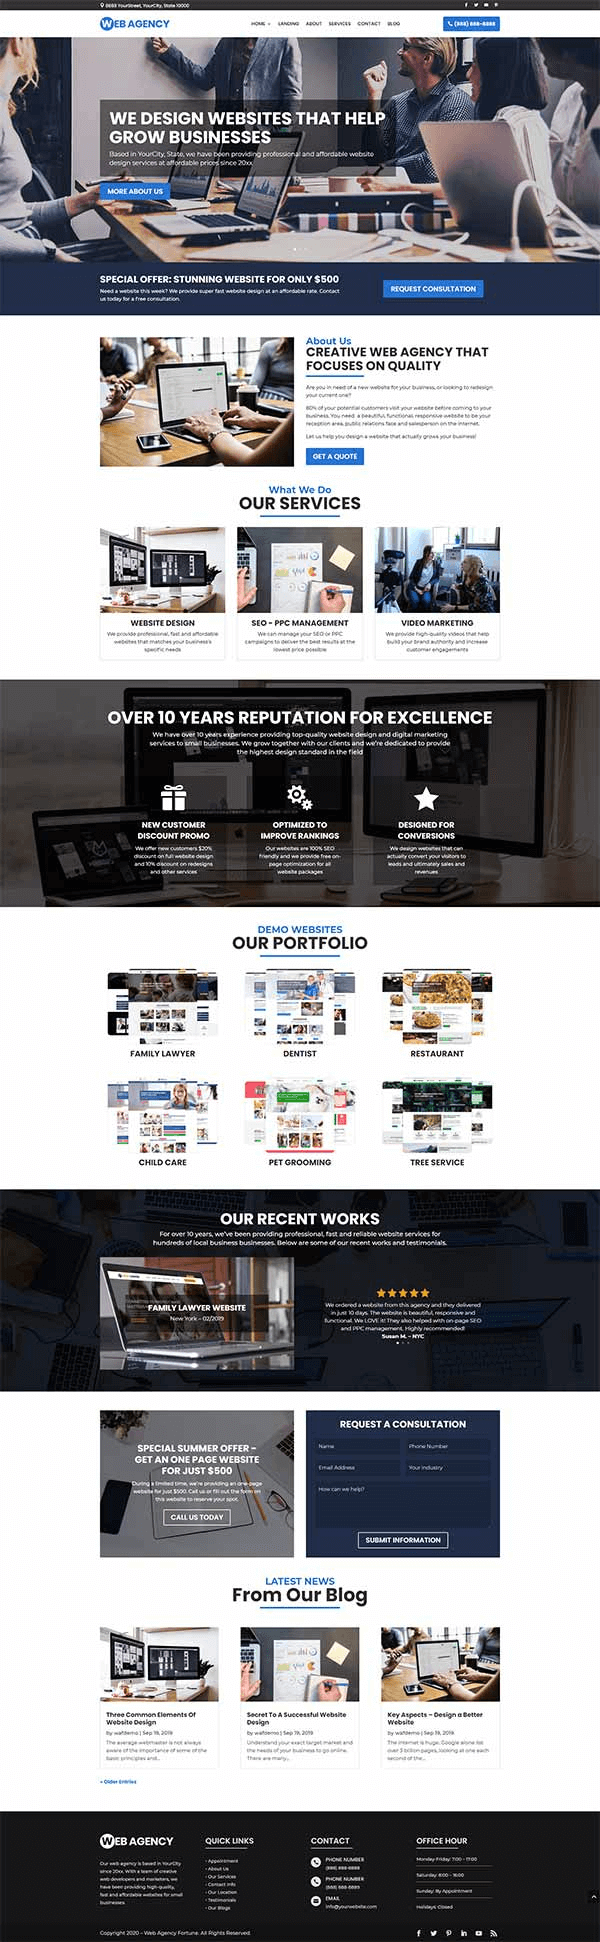 Web-Agency-Fortune-feature-2